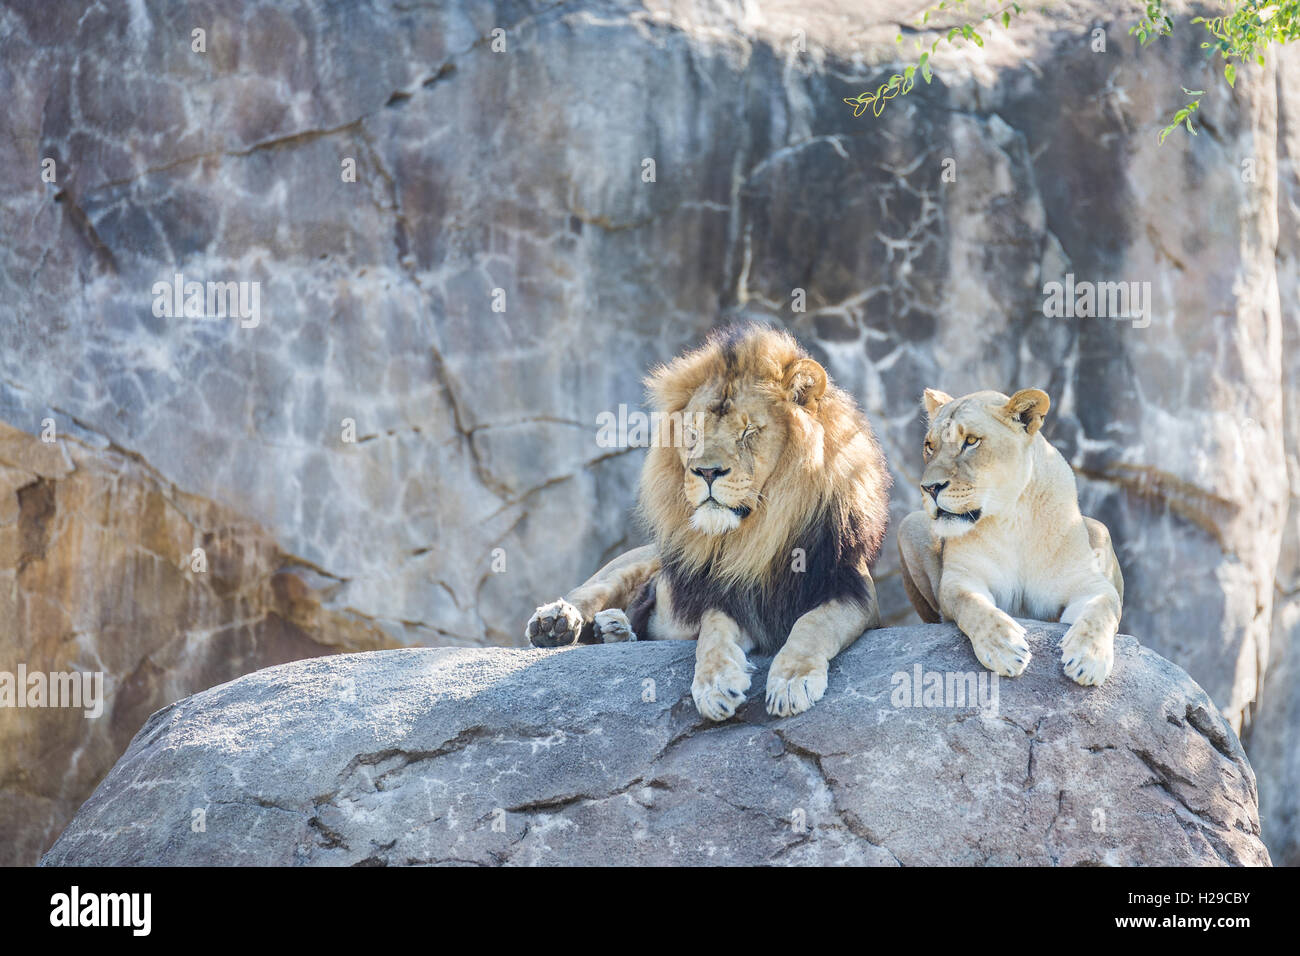 male lions laying photos male lions laying images alamy. Black Bedroom Furniture Sets. Home Design Ideas